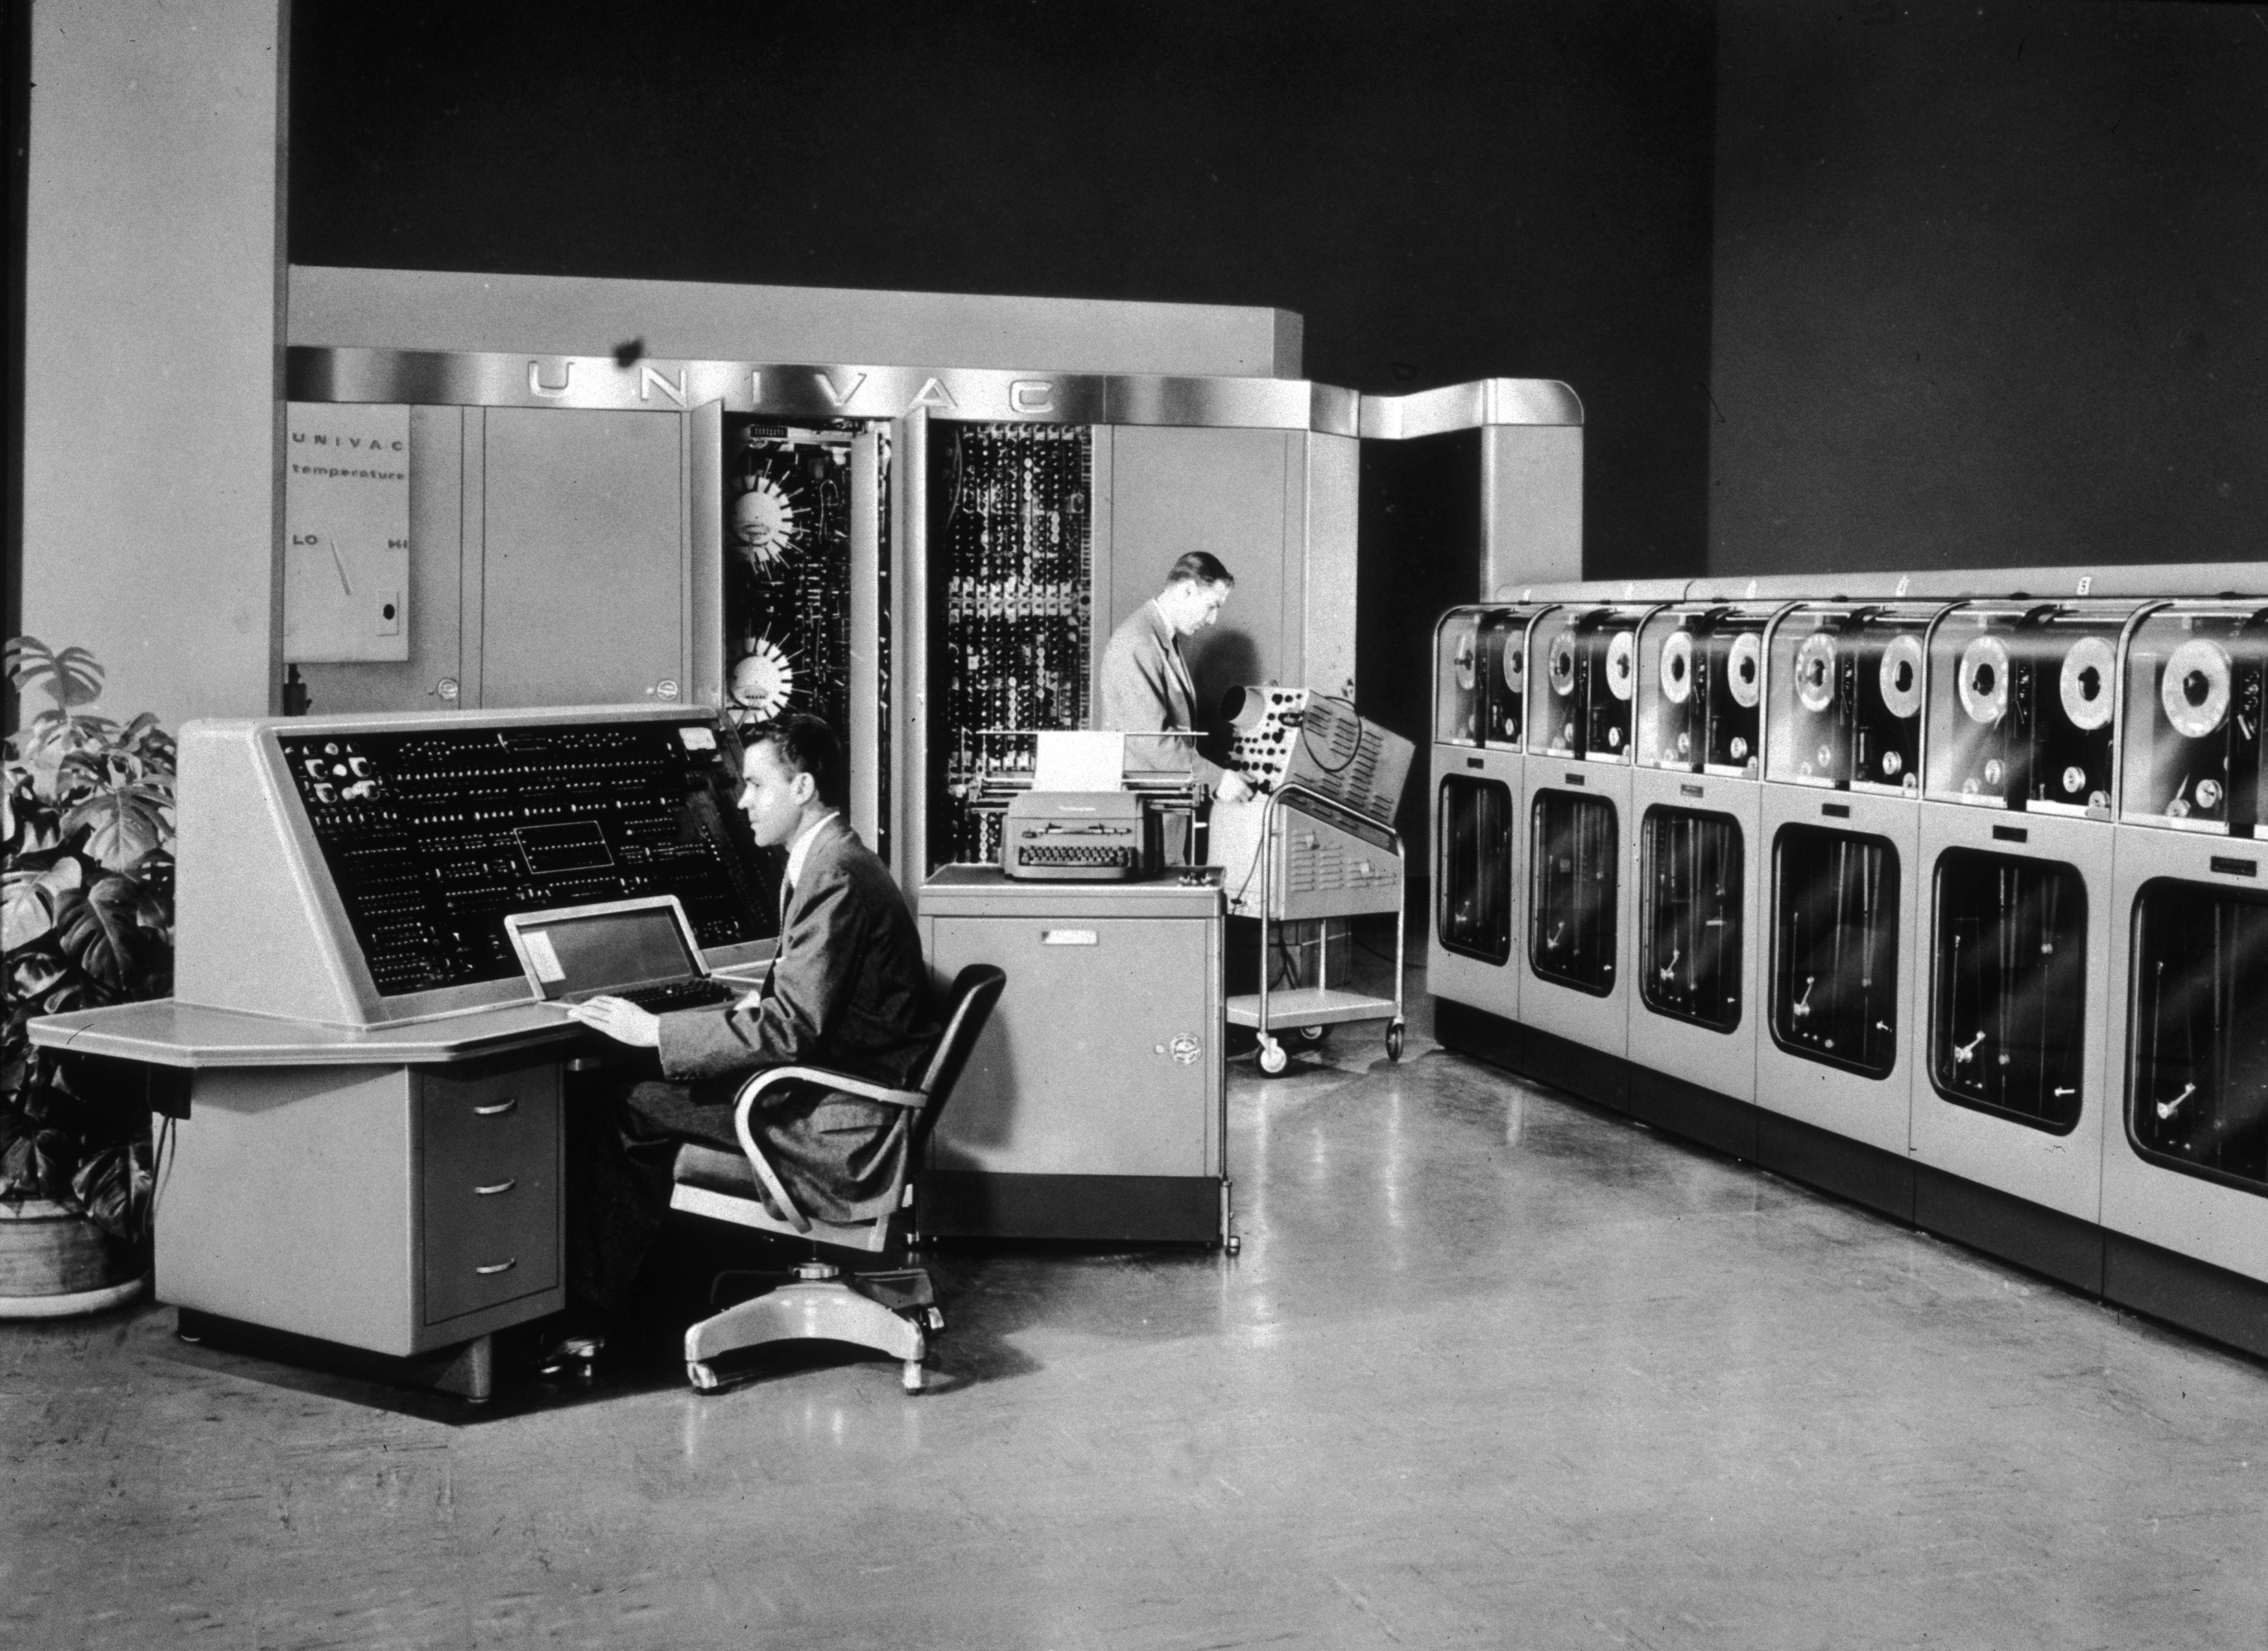 an analysis of the era of computers in 1990 The industrial era 1947 - 1948 the first generation of computers start approximately in this era and computers were characterized by electromechanical mechanisms and partly programmable.